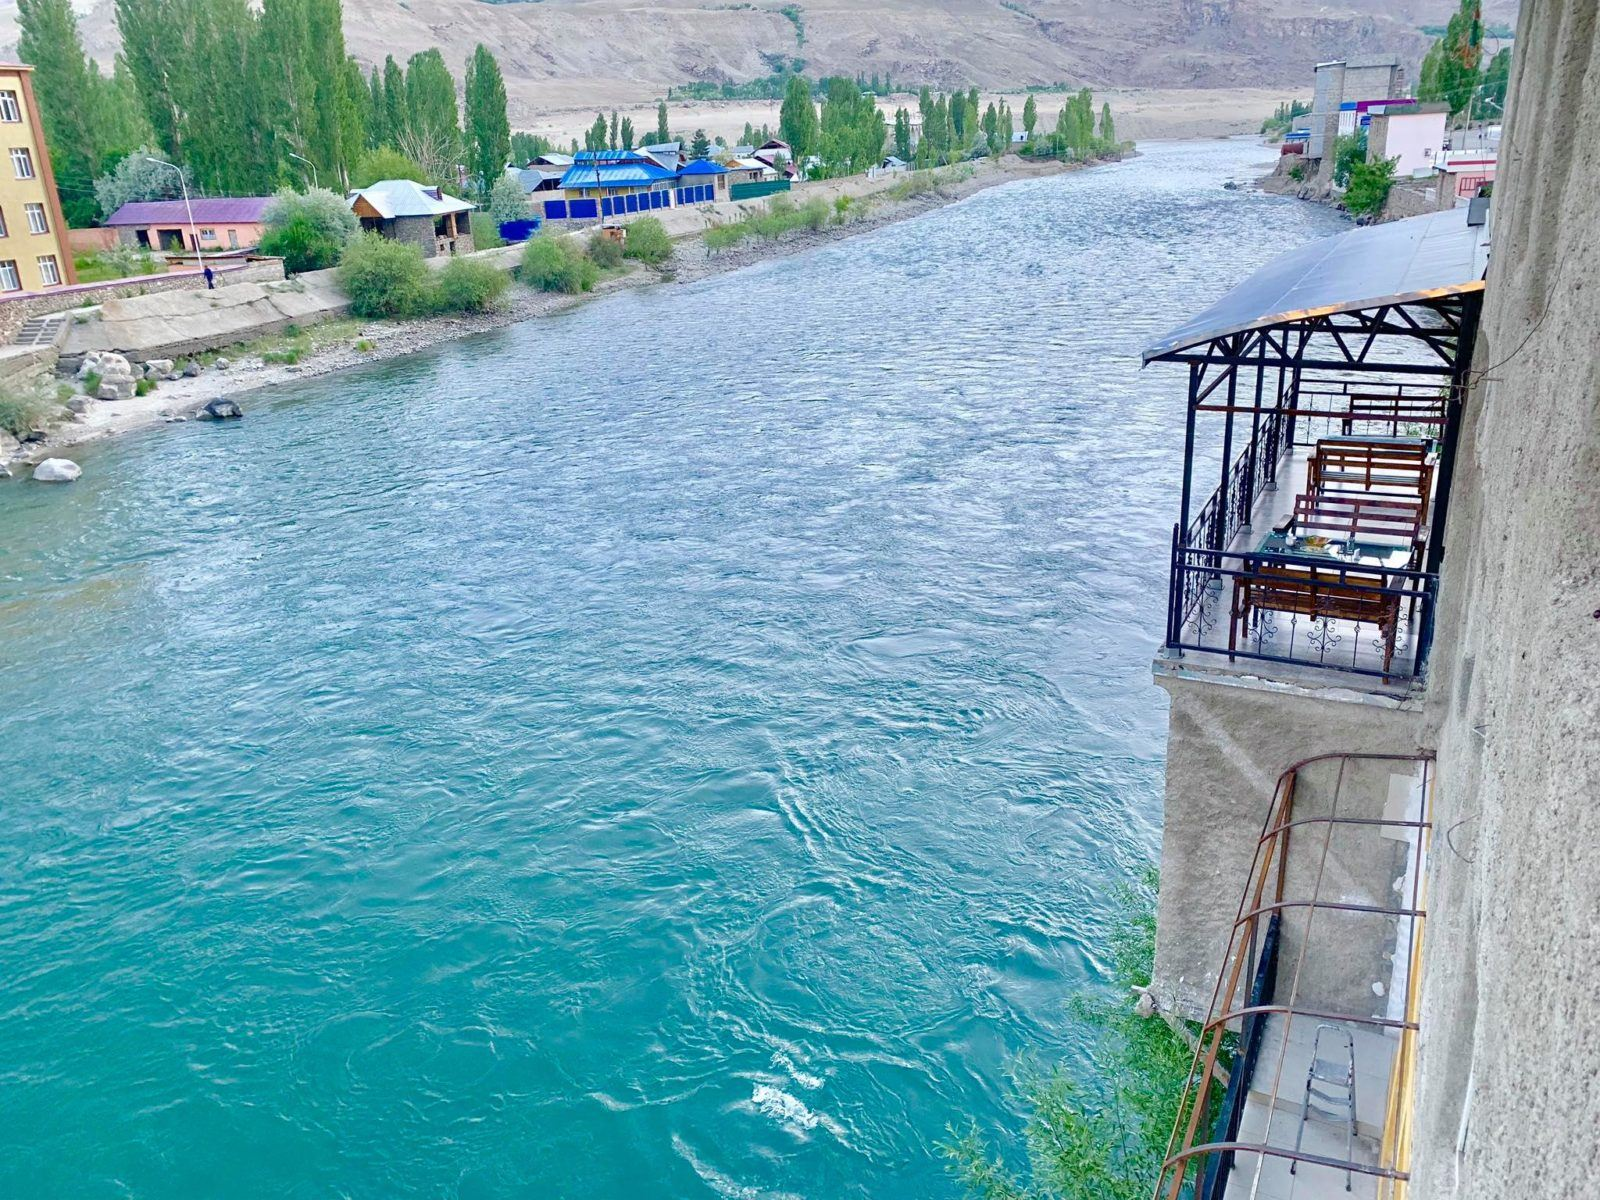 13 Things You Should Not Miss When You Travel the Pamir Highway in Tajikistan5